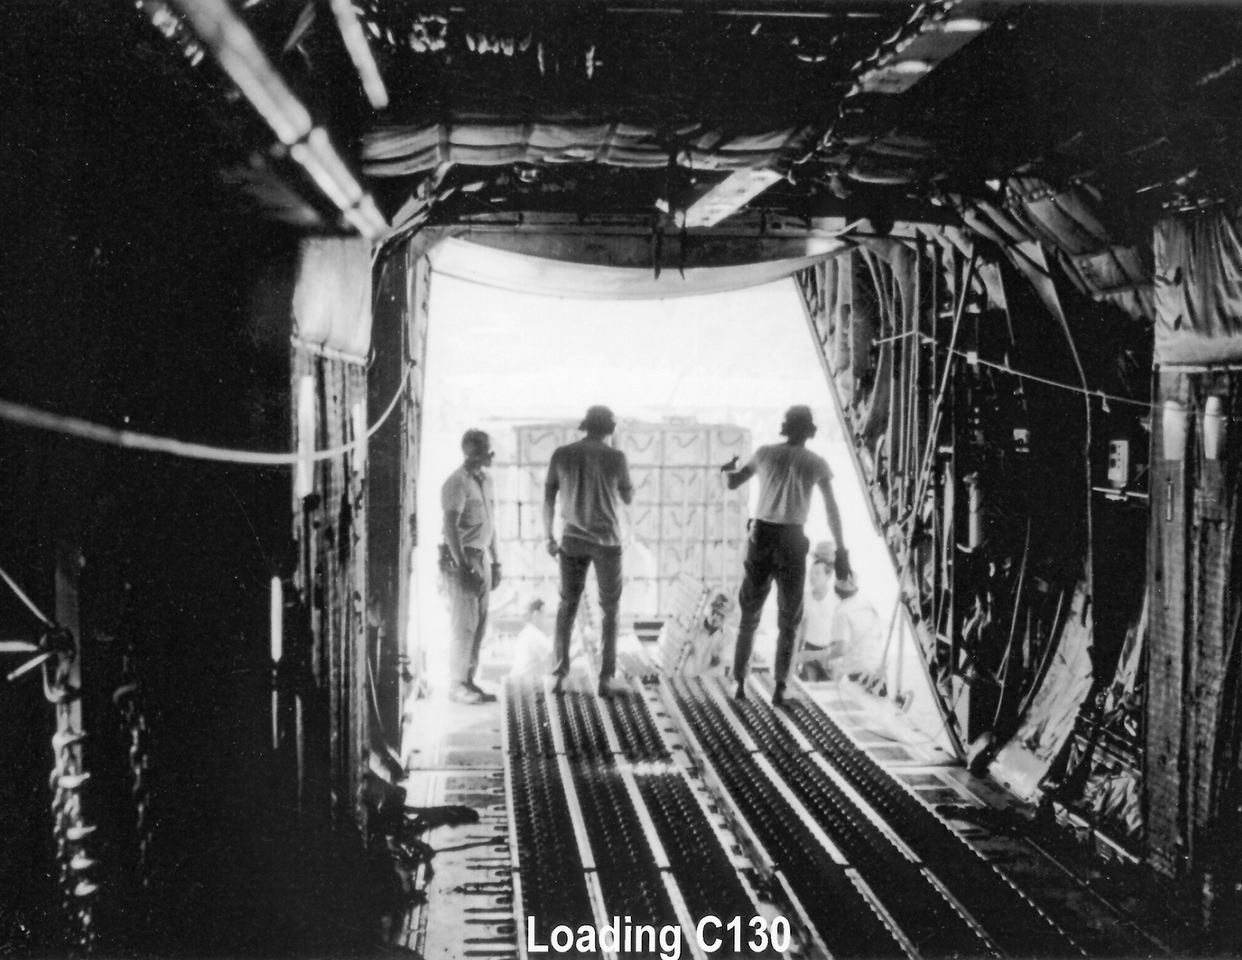 Barry Reed - Loading C130